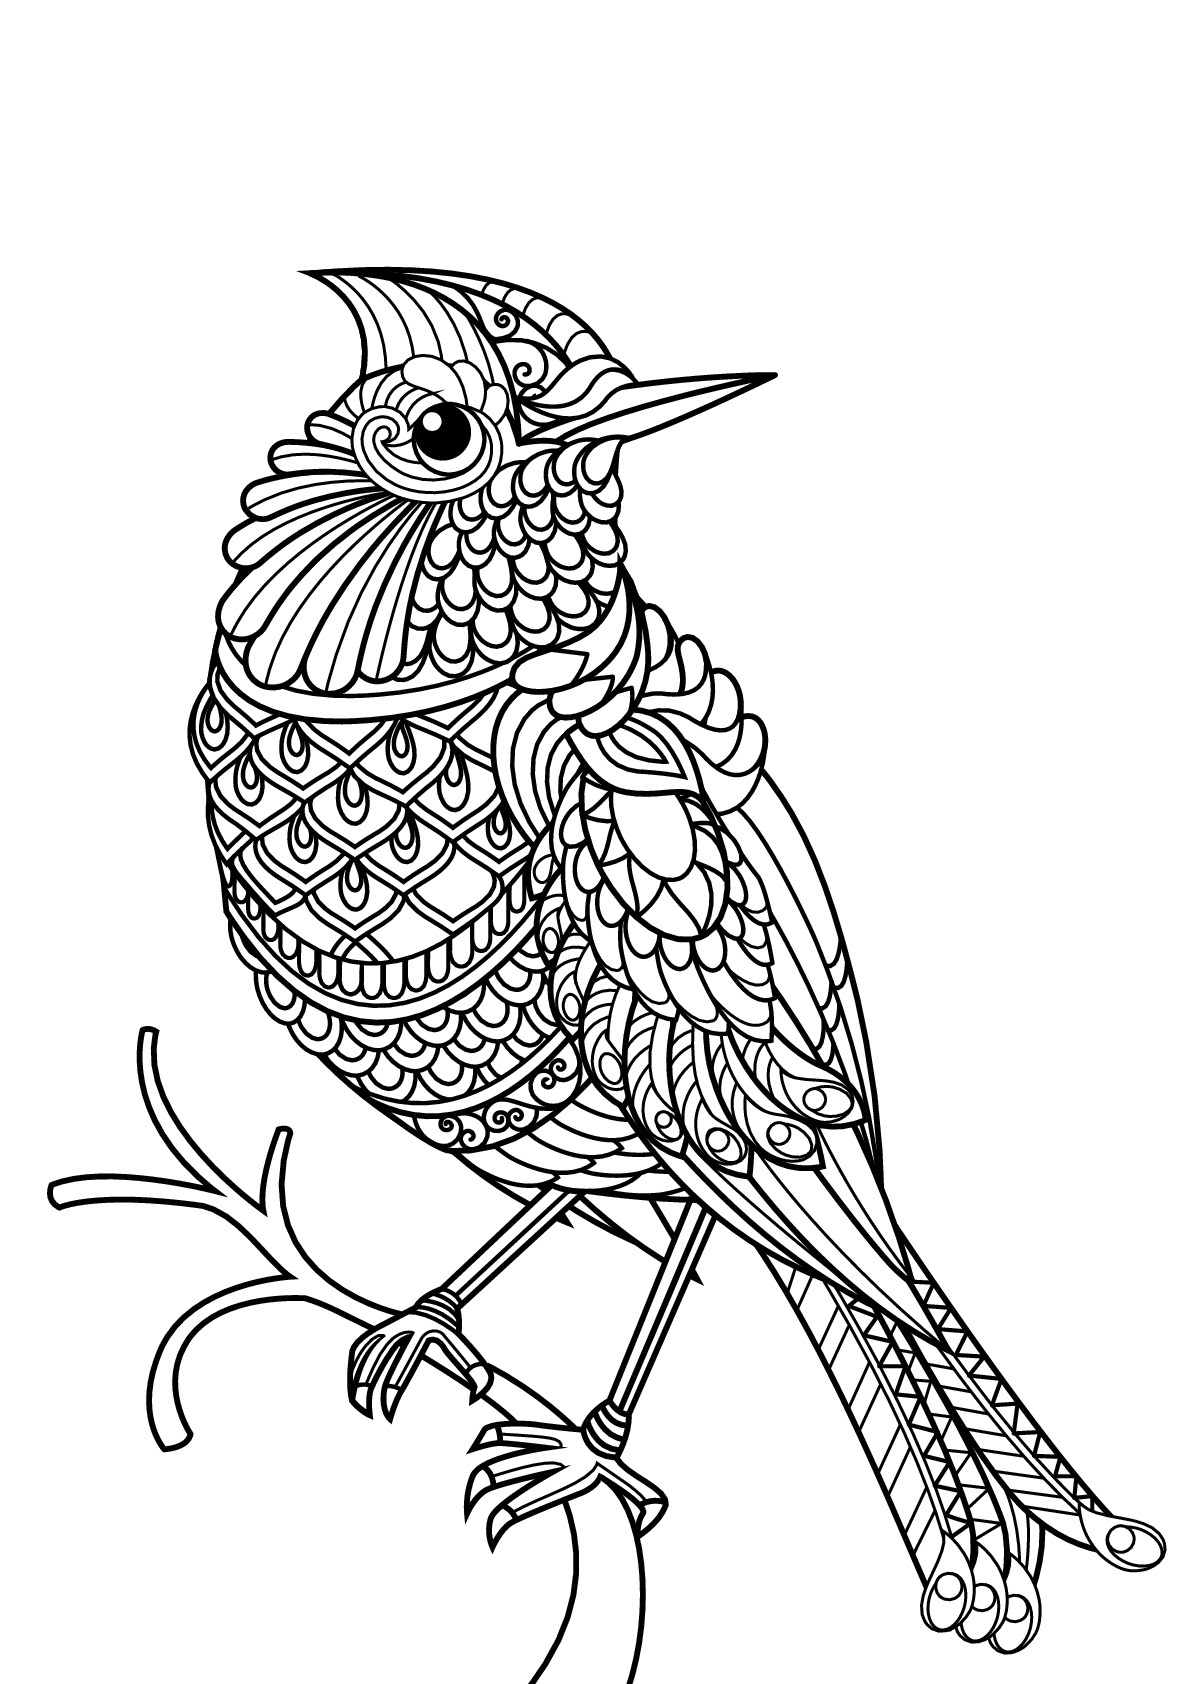 adult coloring pages animals free book bird birds adult coloring pages adult animals coloring pages